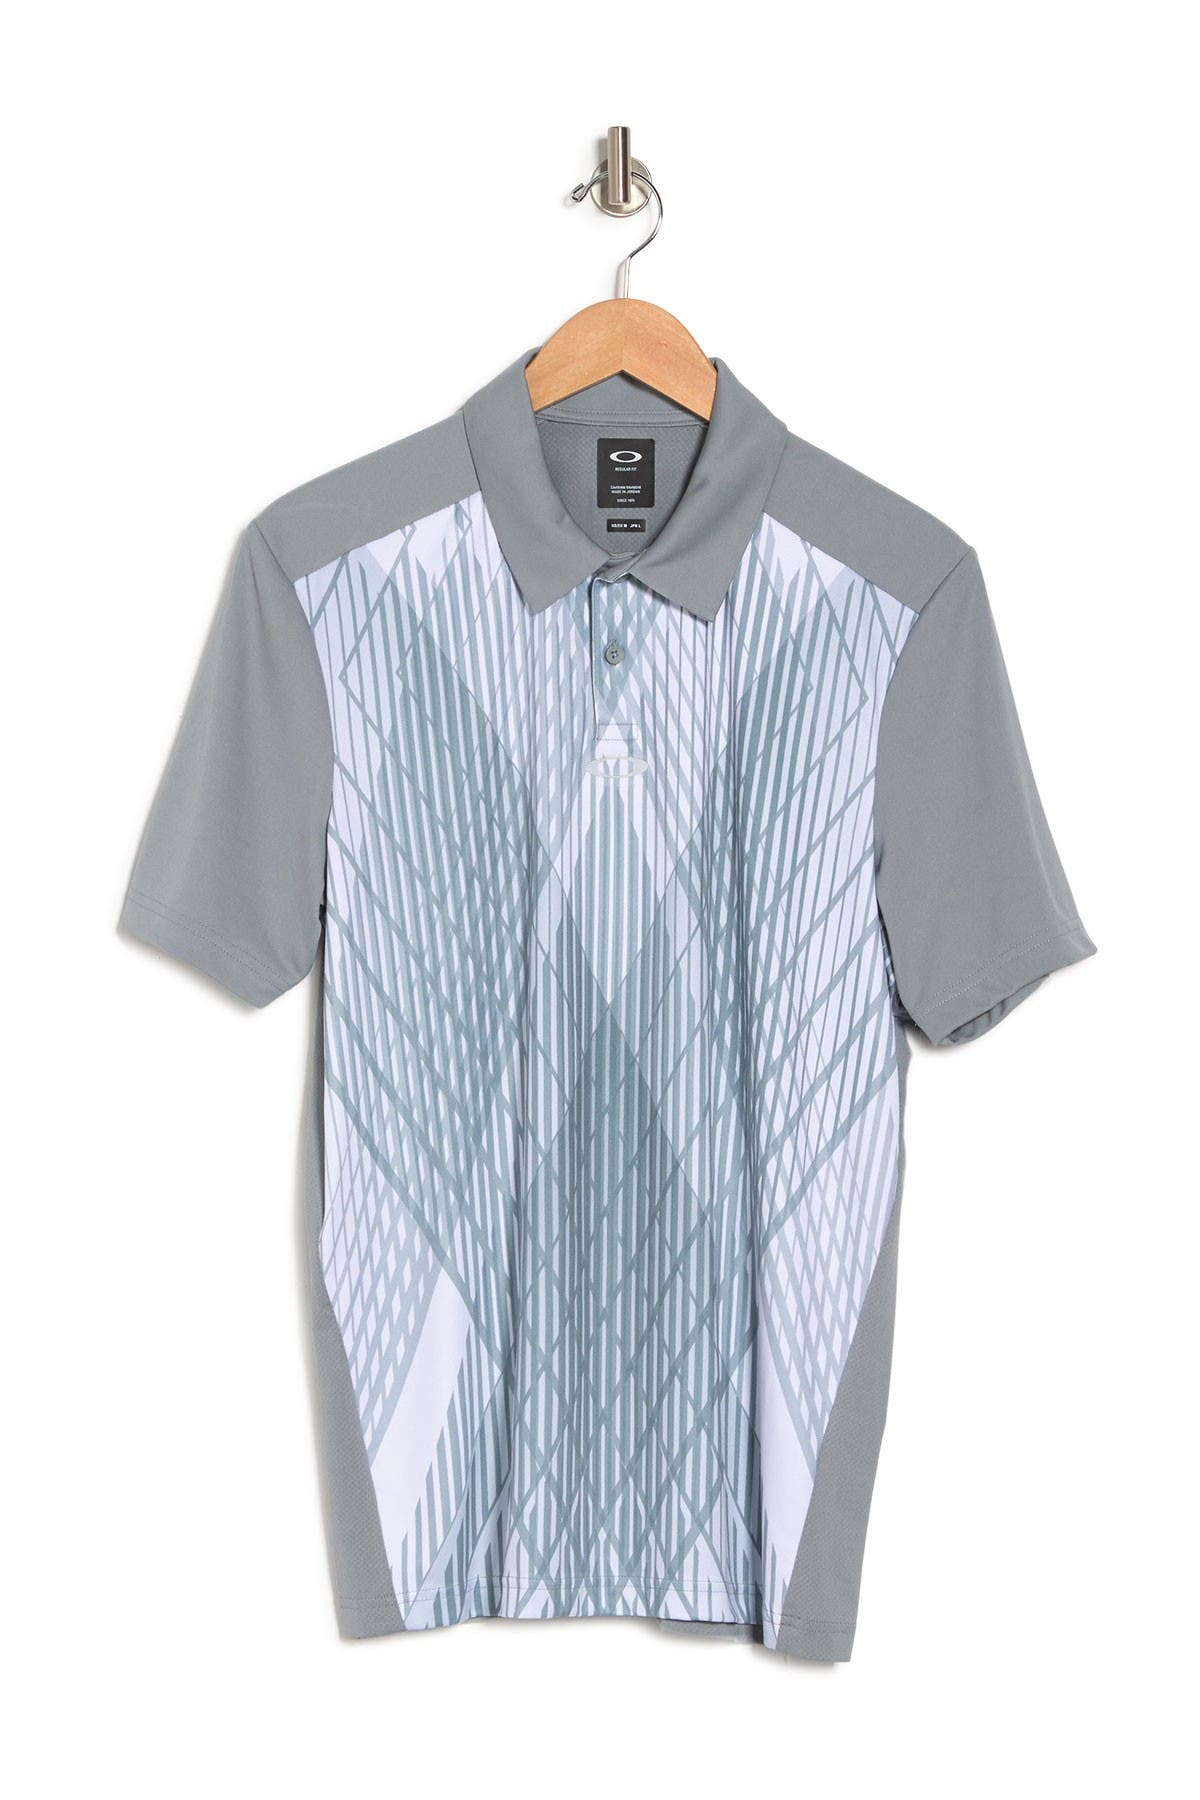 Image of Oakley Cross Graphic Polo